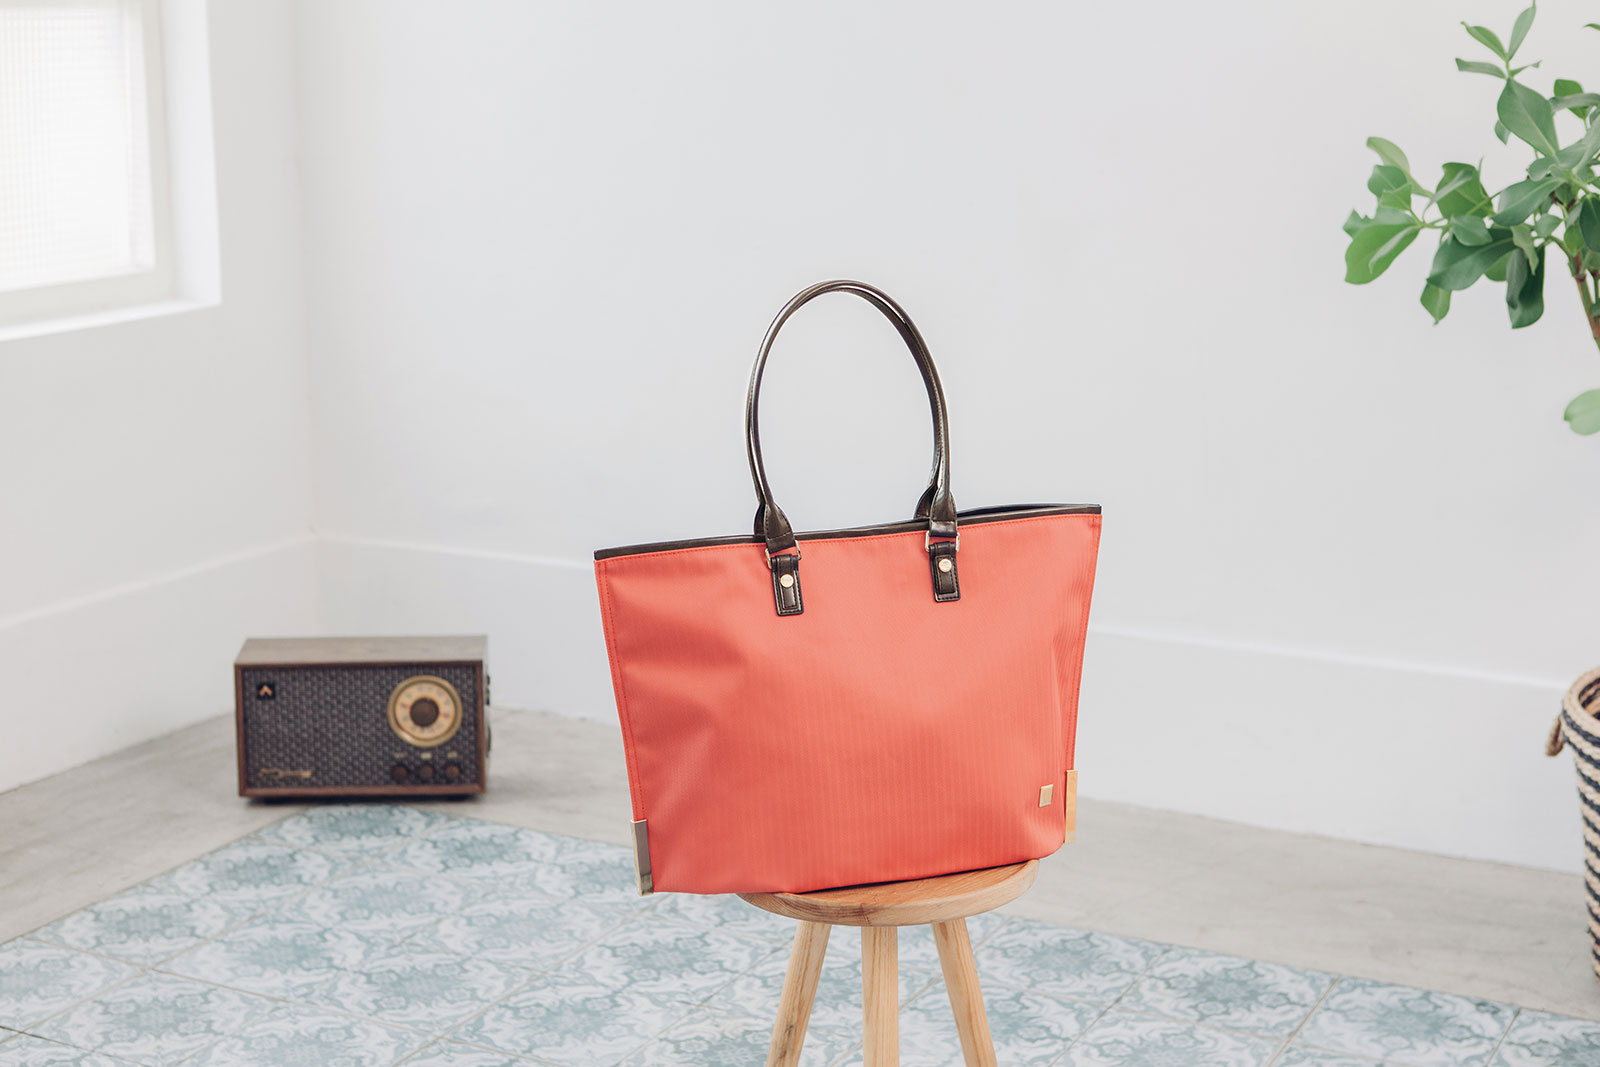 The go-to tote